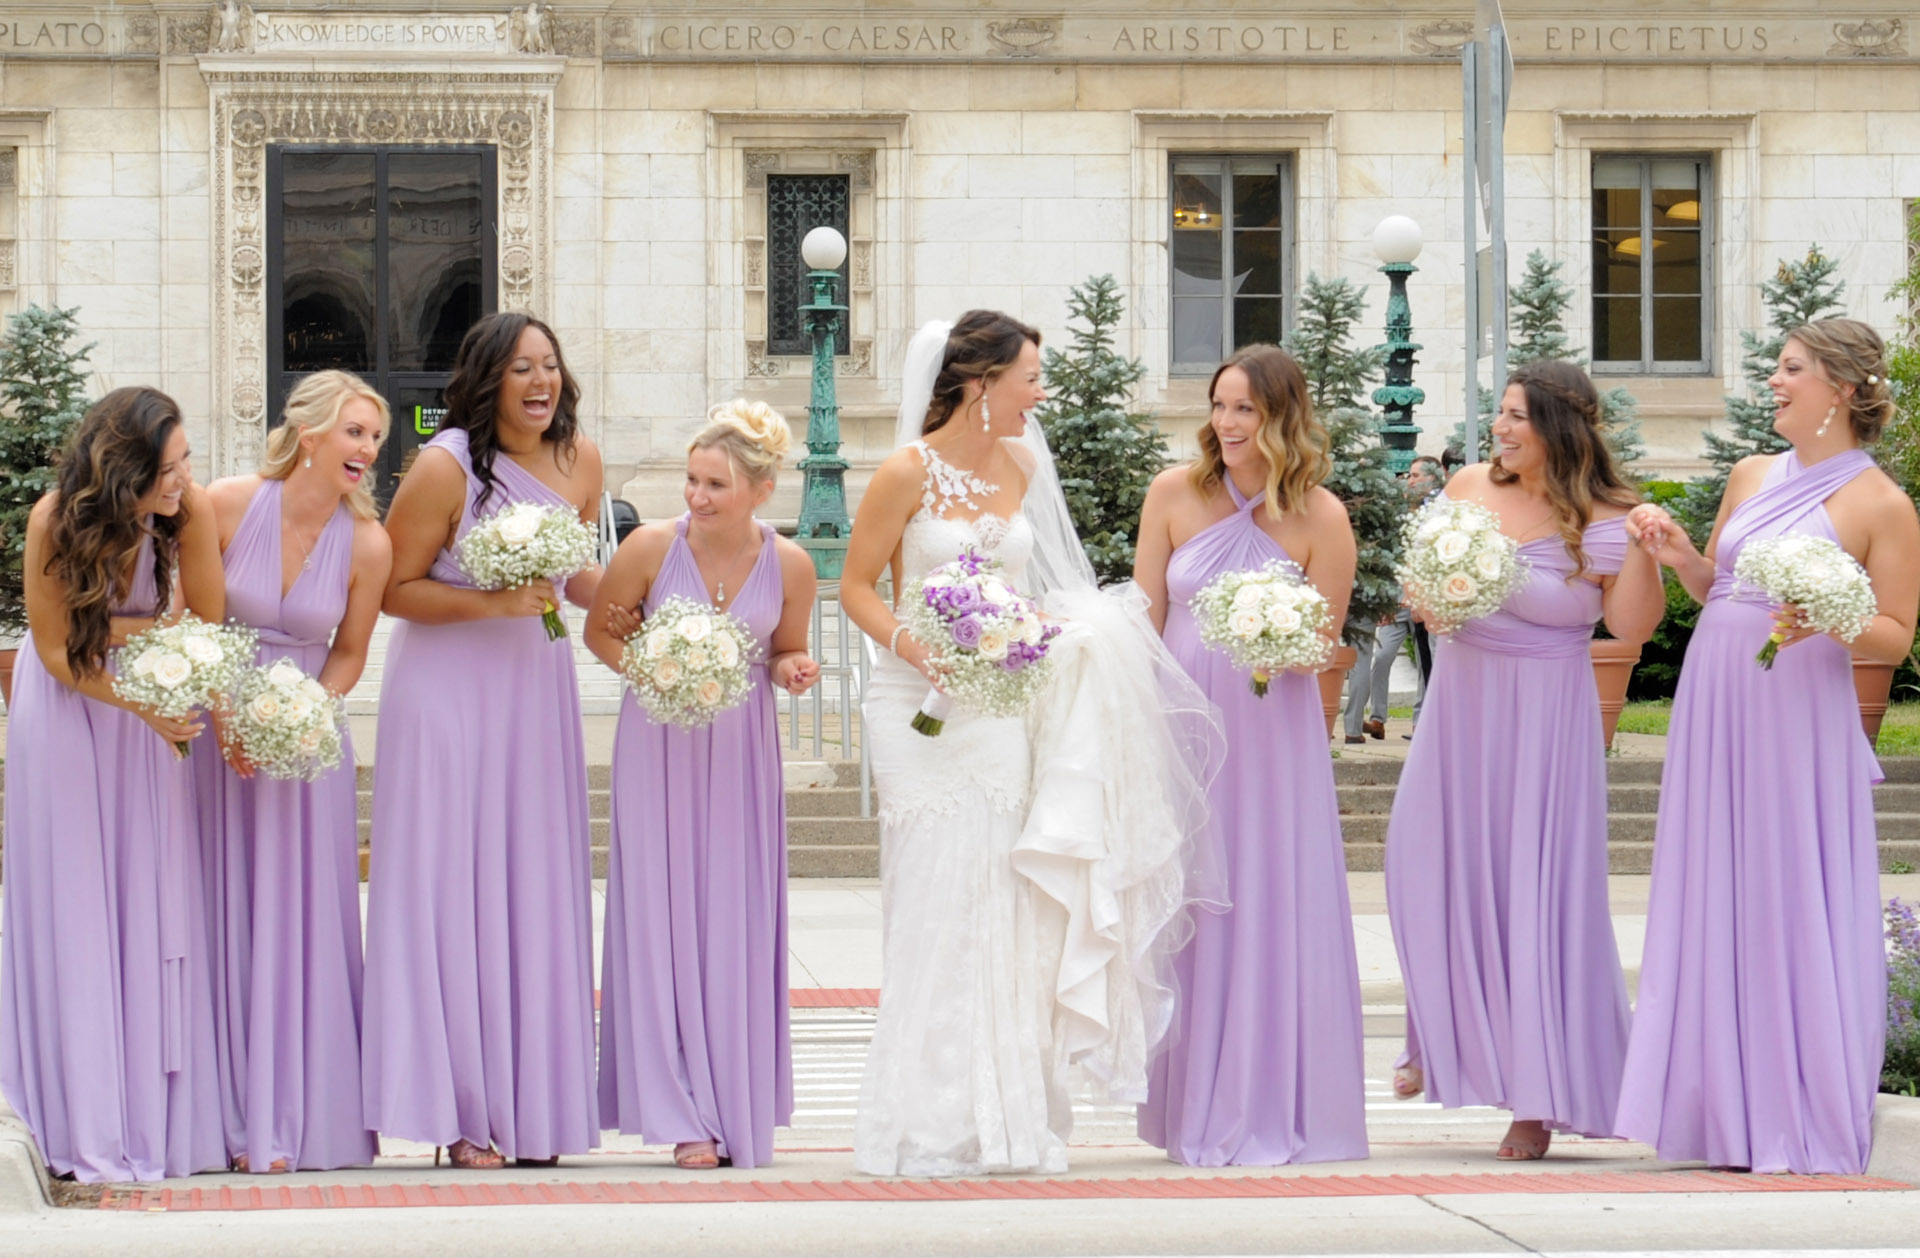 Epic Wedding portrait showing the bride and her bridesmaids heading across Woodward Avenue in Detroit, Michigan.